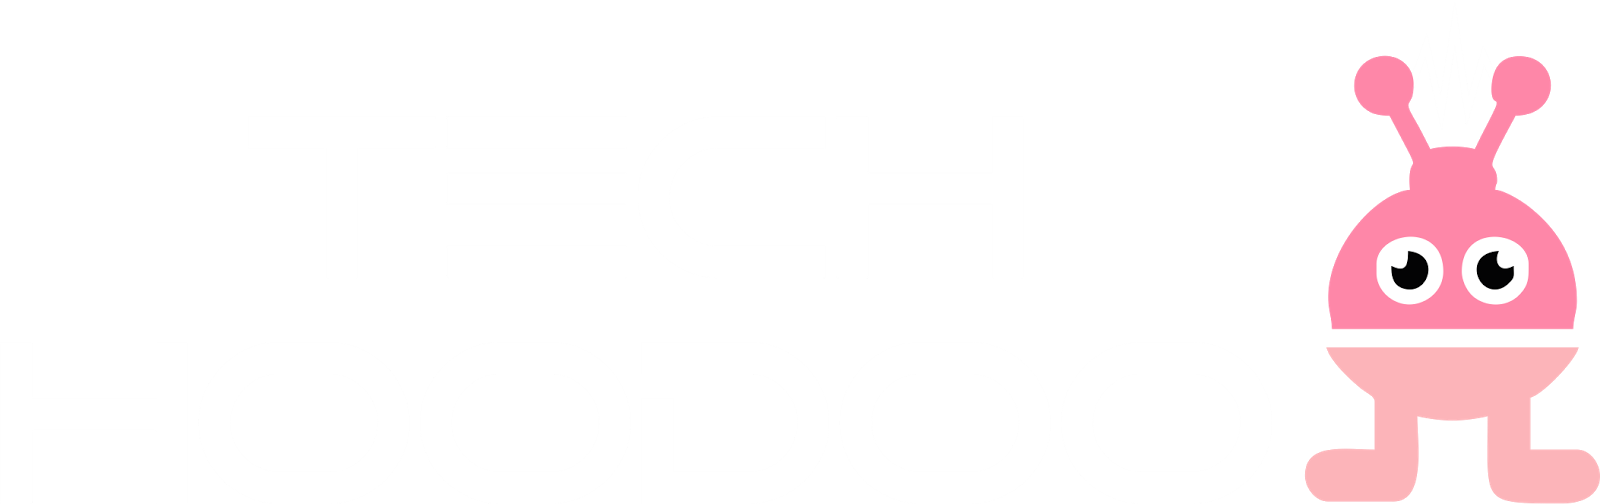 TechHoodoo | Mobile, Tech, Lifestyle, Startups, How-tos, Design and Auto Reviews